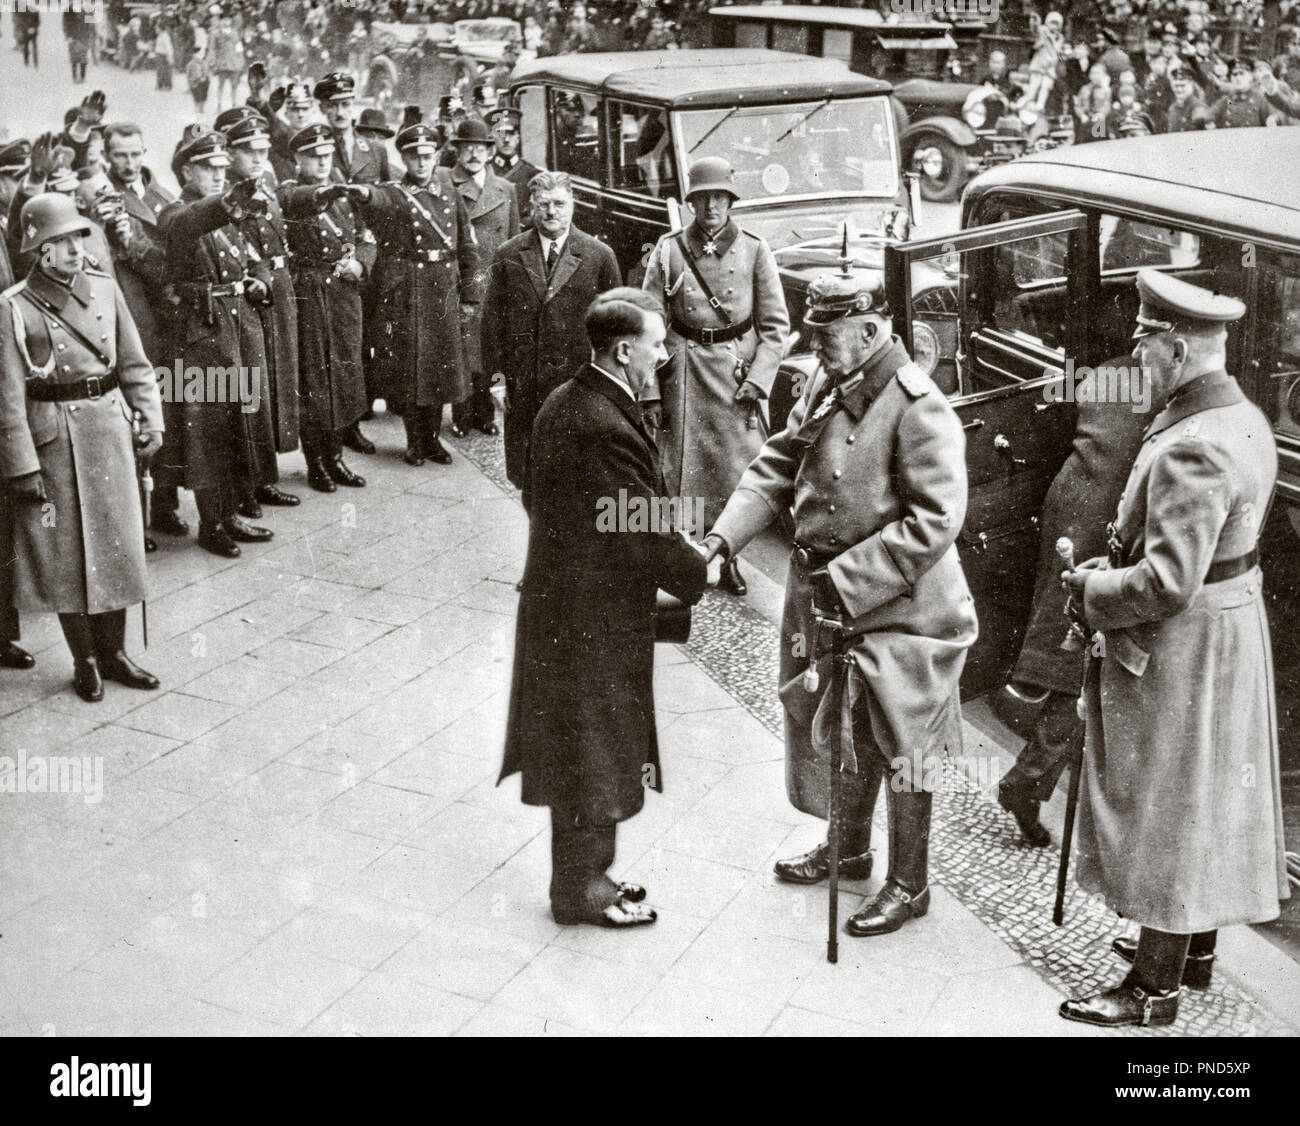 1930s JANUARY 30 1933 ADOLF HITLER NEW CHANCELLOR OF GERMANY GREETS GERMAN PRESIDENT PAUL VON HINDENBURG - q72071 CPC001 HARS VICTORY STRATEGY JANUARY EXCITEMENT LEADERSHIP POWERFUL DIRECTION OPPORTUNITY AUTHORITY OCCUPATIONS POLITICS SHAKING HANDS NAZI ADOLF HITLER ELDERLY MAN GREETS 1933 BLACK AND WHITE CAUCASIAN ETHNICITY CHANCELLOR OLD FASHIONED - Stock Image